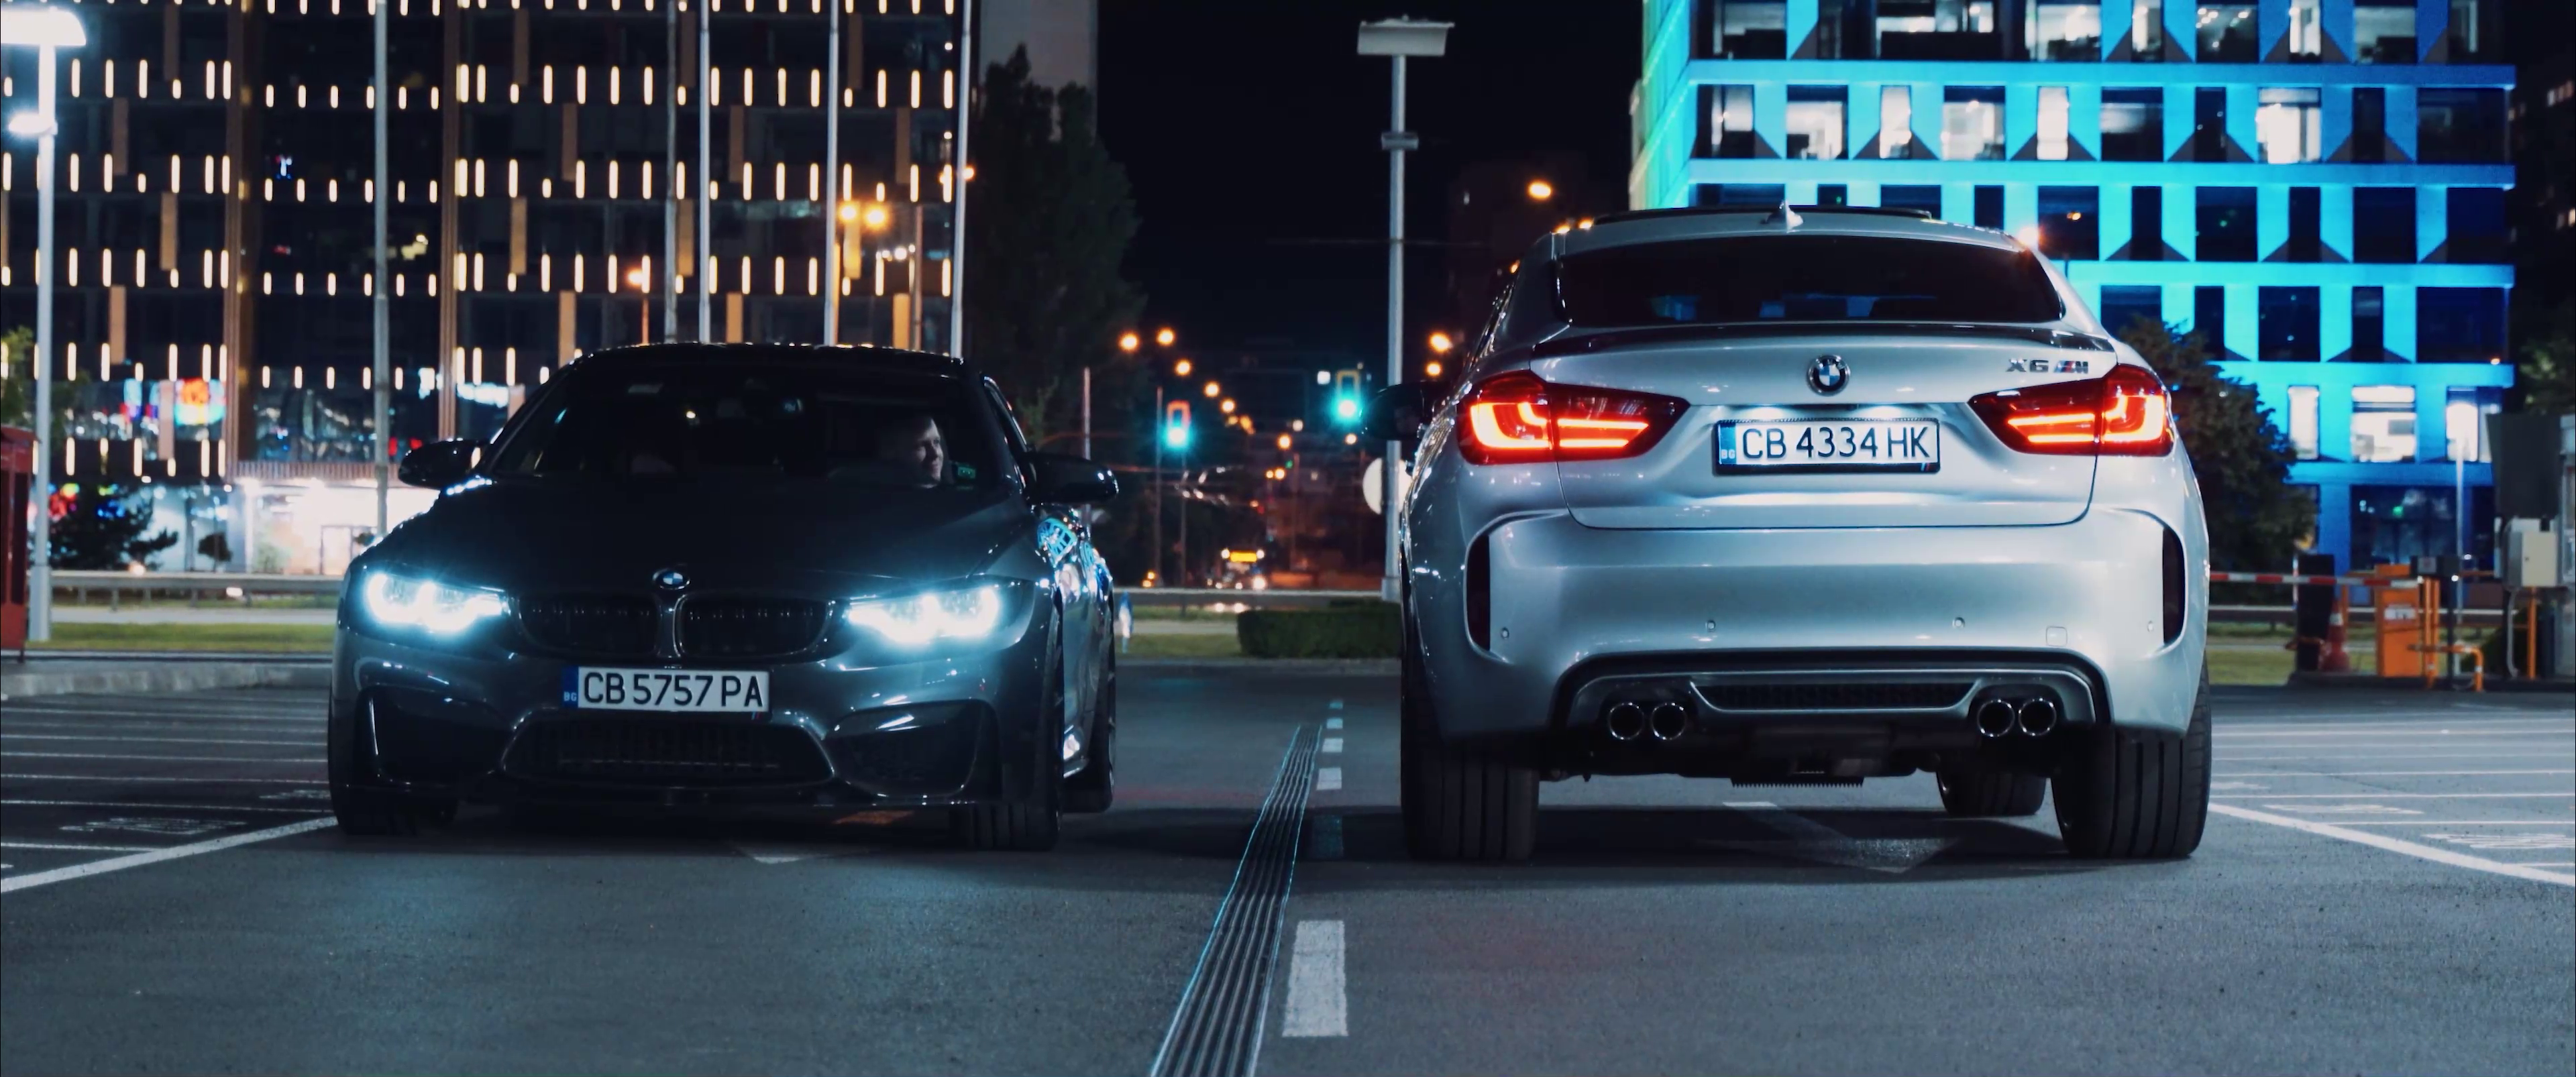 X6M & M4 Night Ride